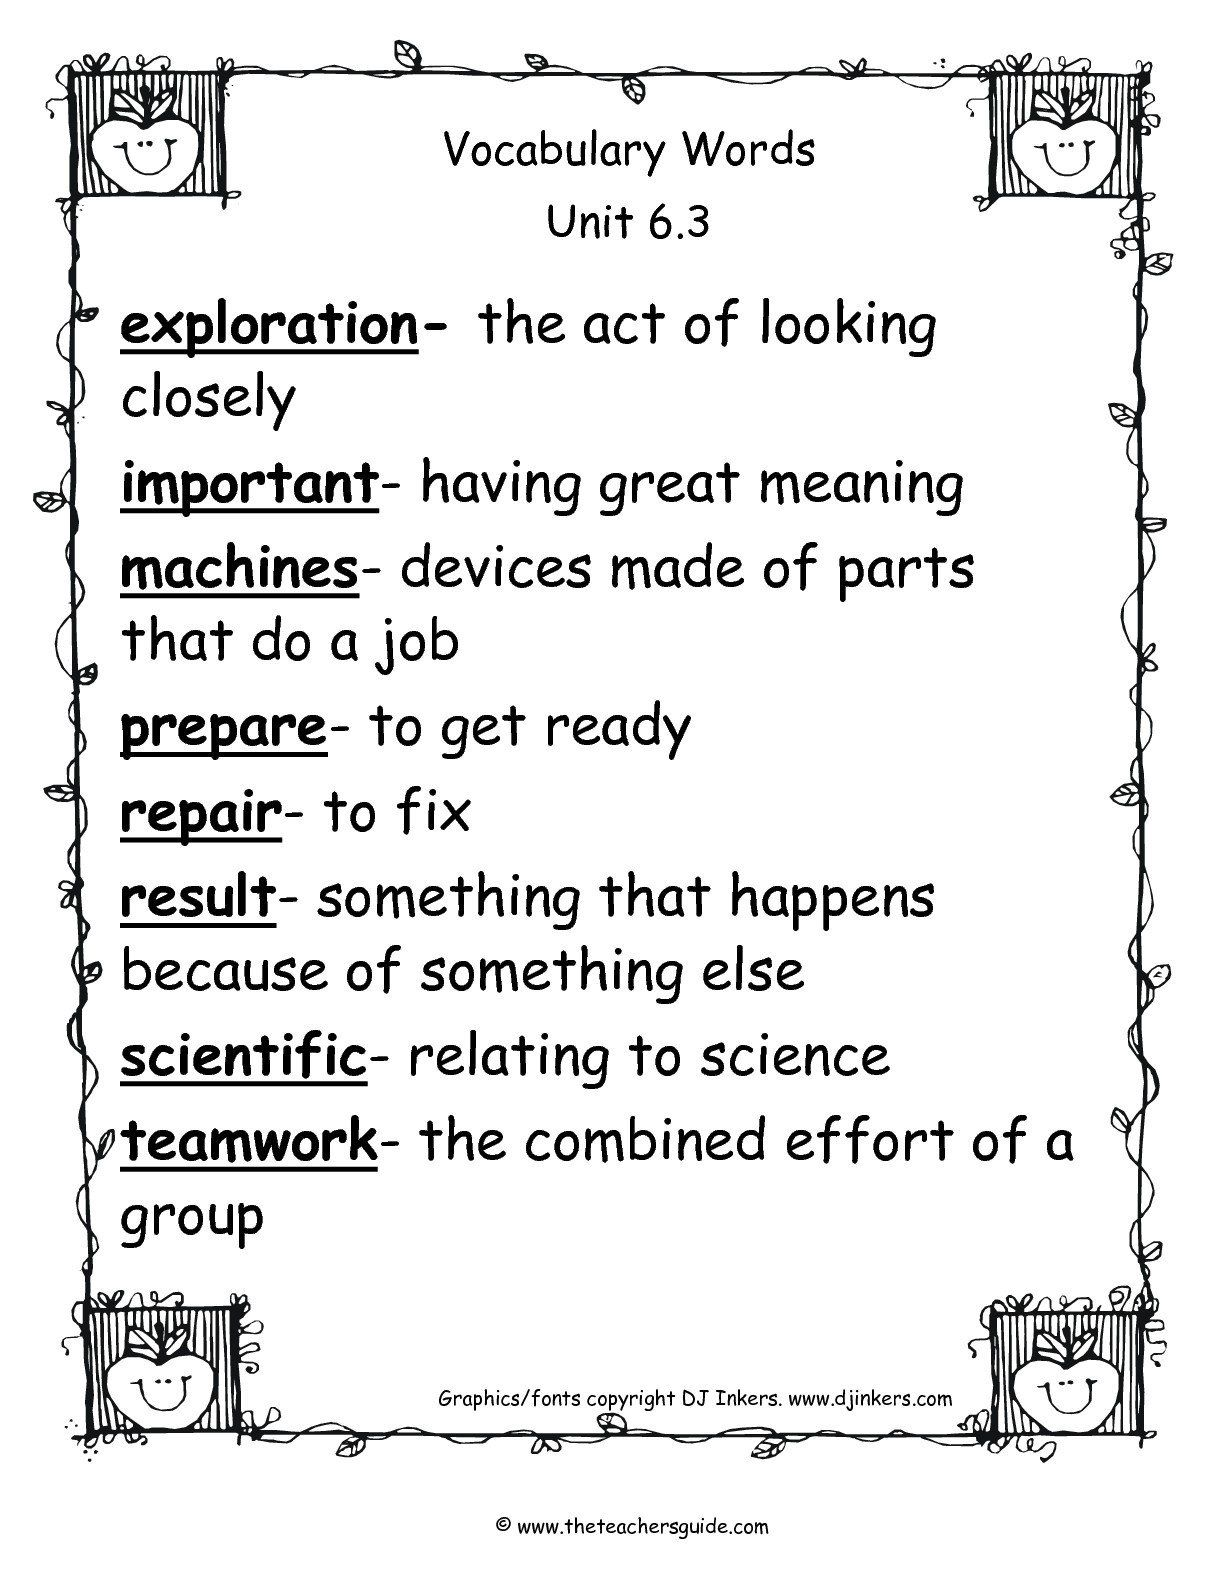 Spelling City Vocabulary Worksheet   Printable Worksheets and Activities  for Teachers [ 1584 x 1224 Pixel ]